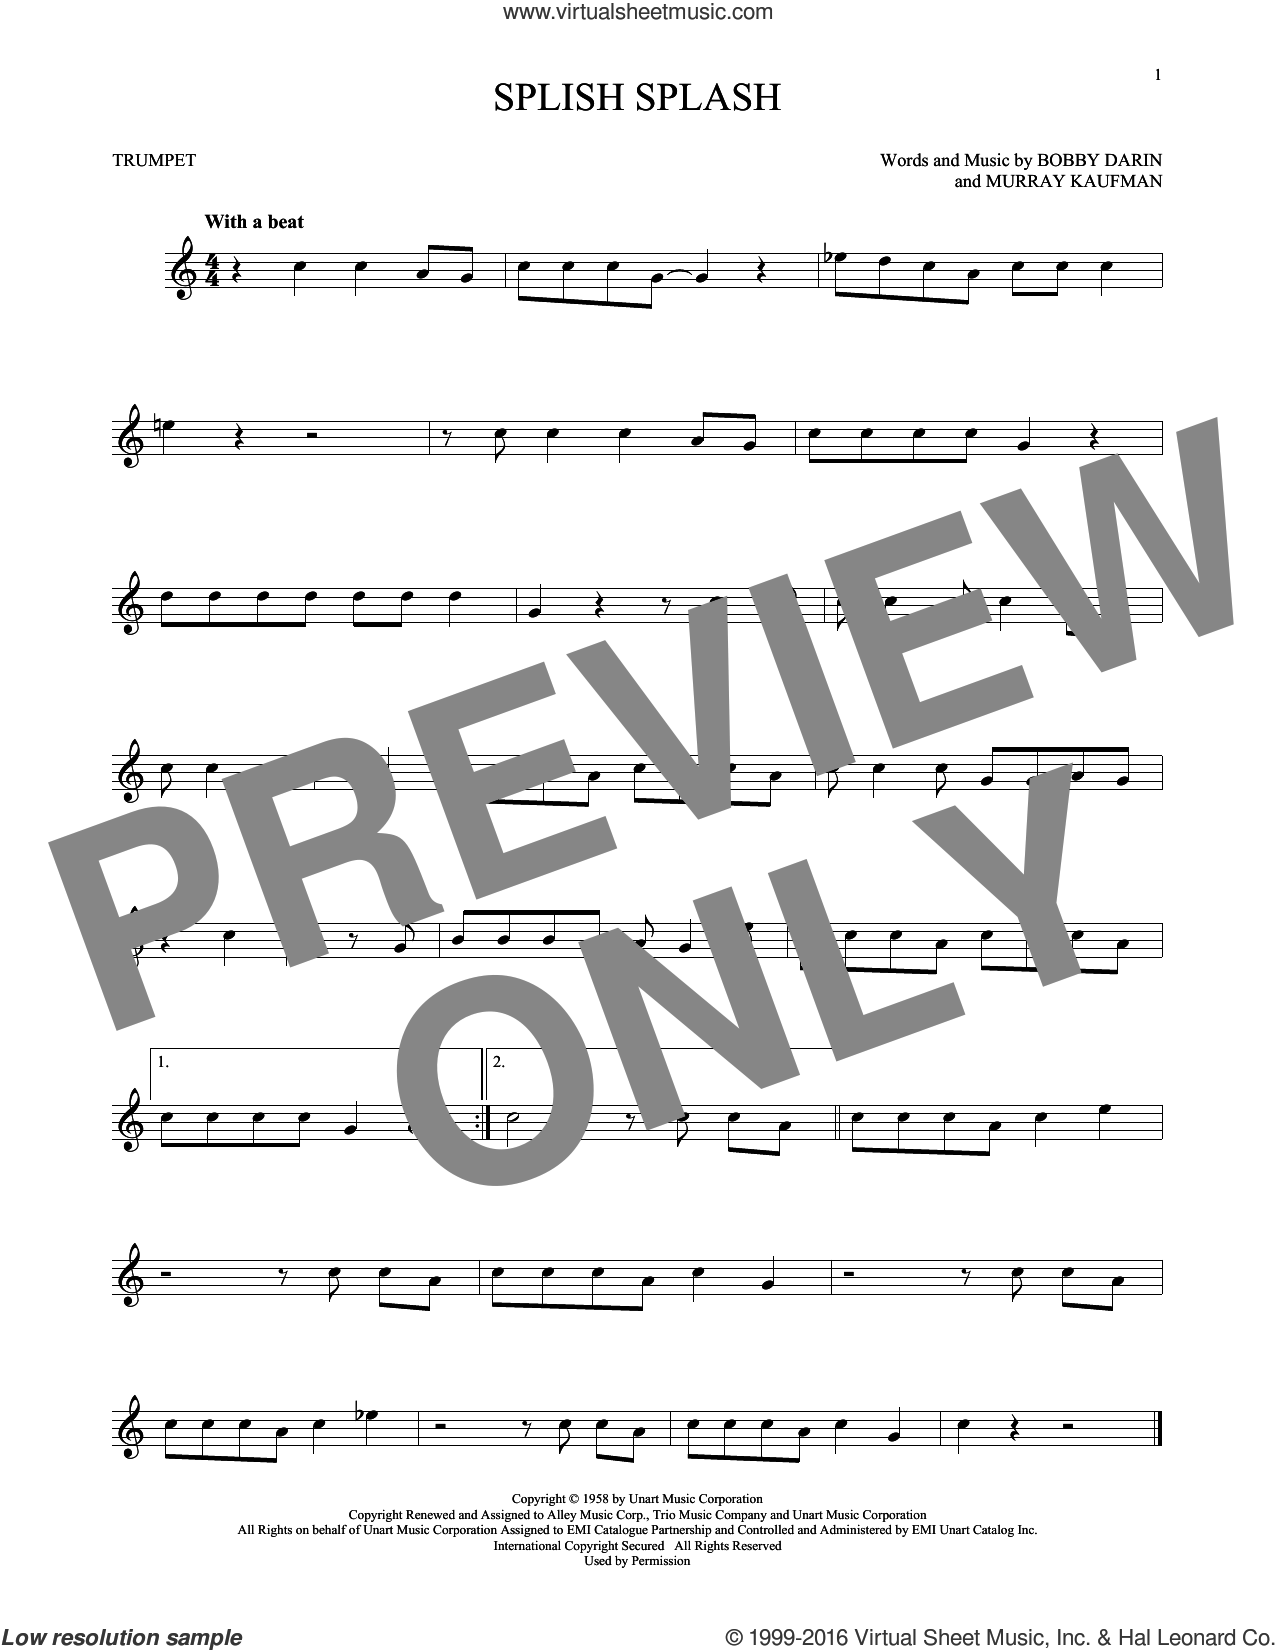 Splish Splash sheet music for trumpet solo by Bobby Darin and Murray Kaufman, intermediate skill level